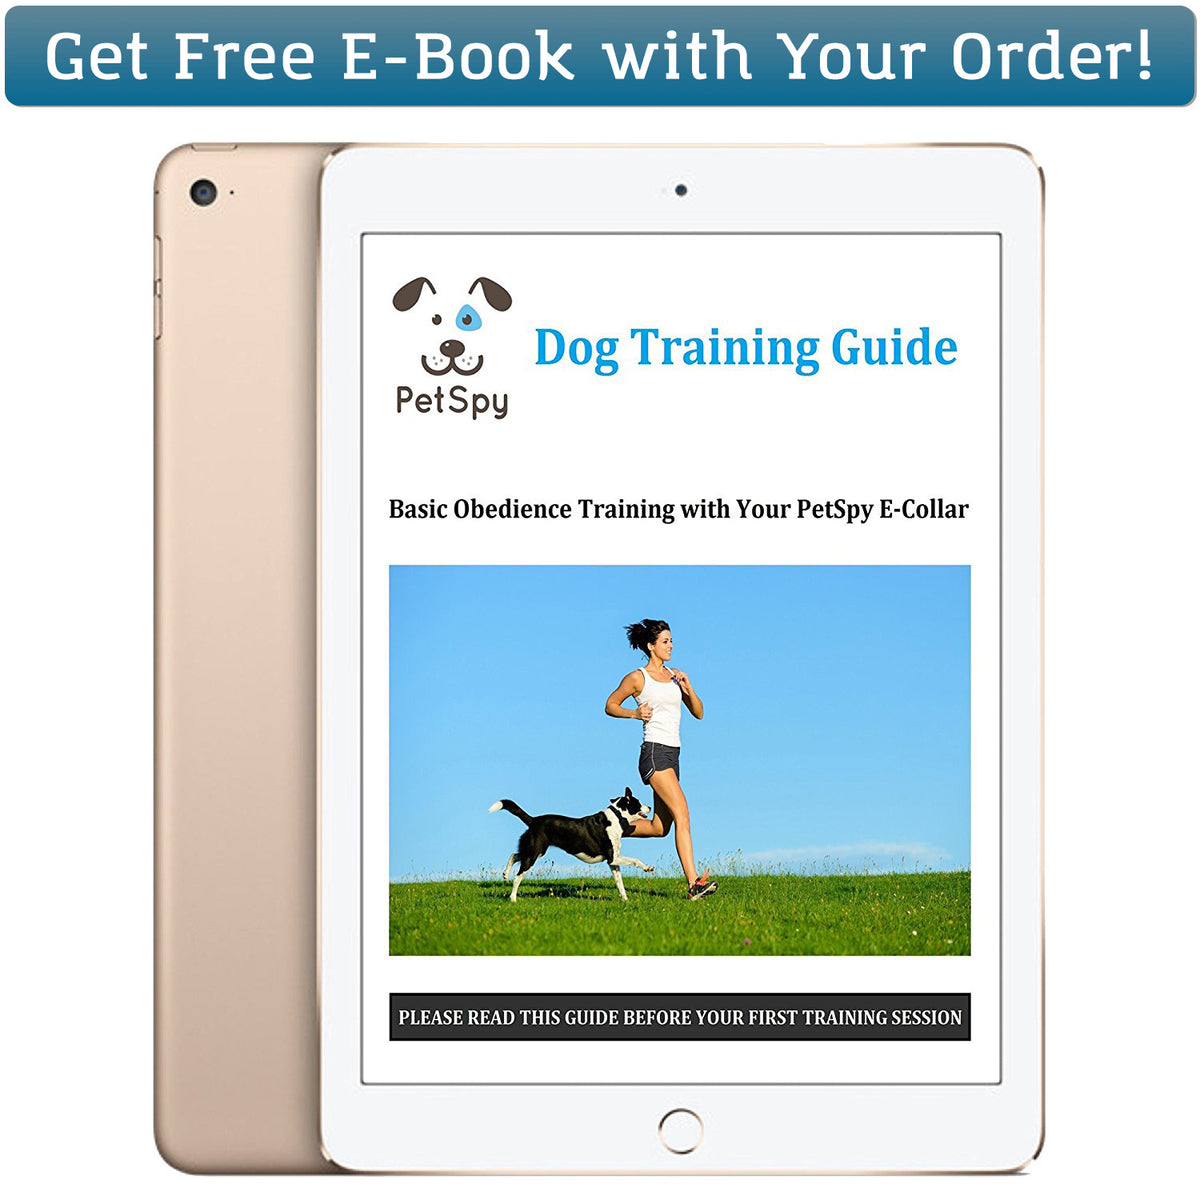 Get free ebook with dog training tips from PetSpy with your order